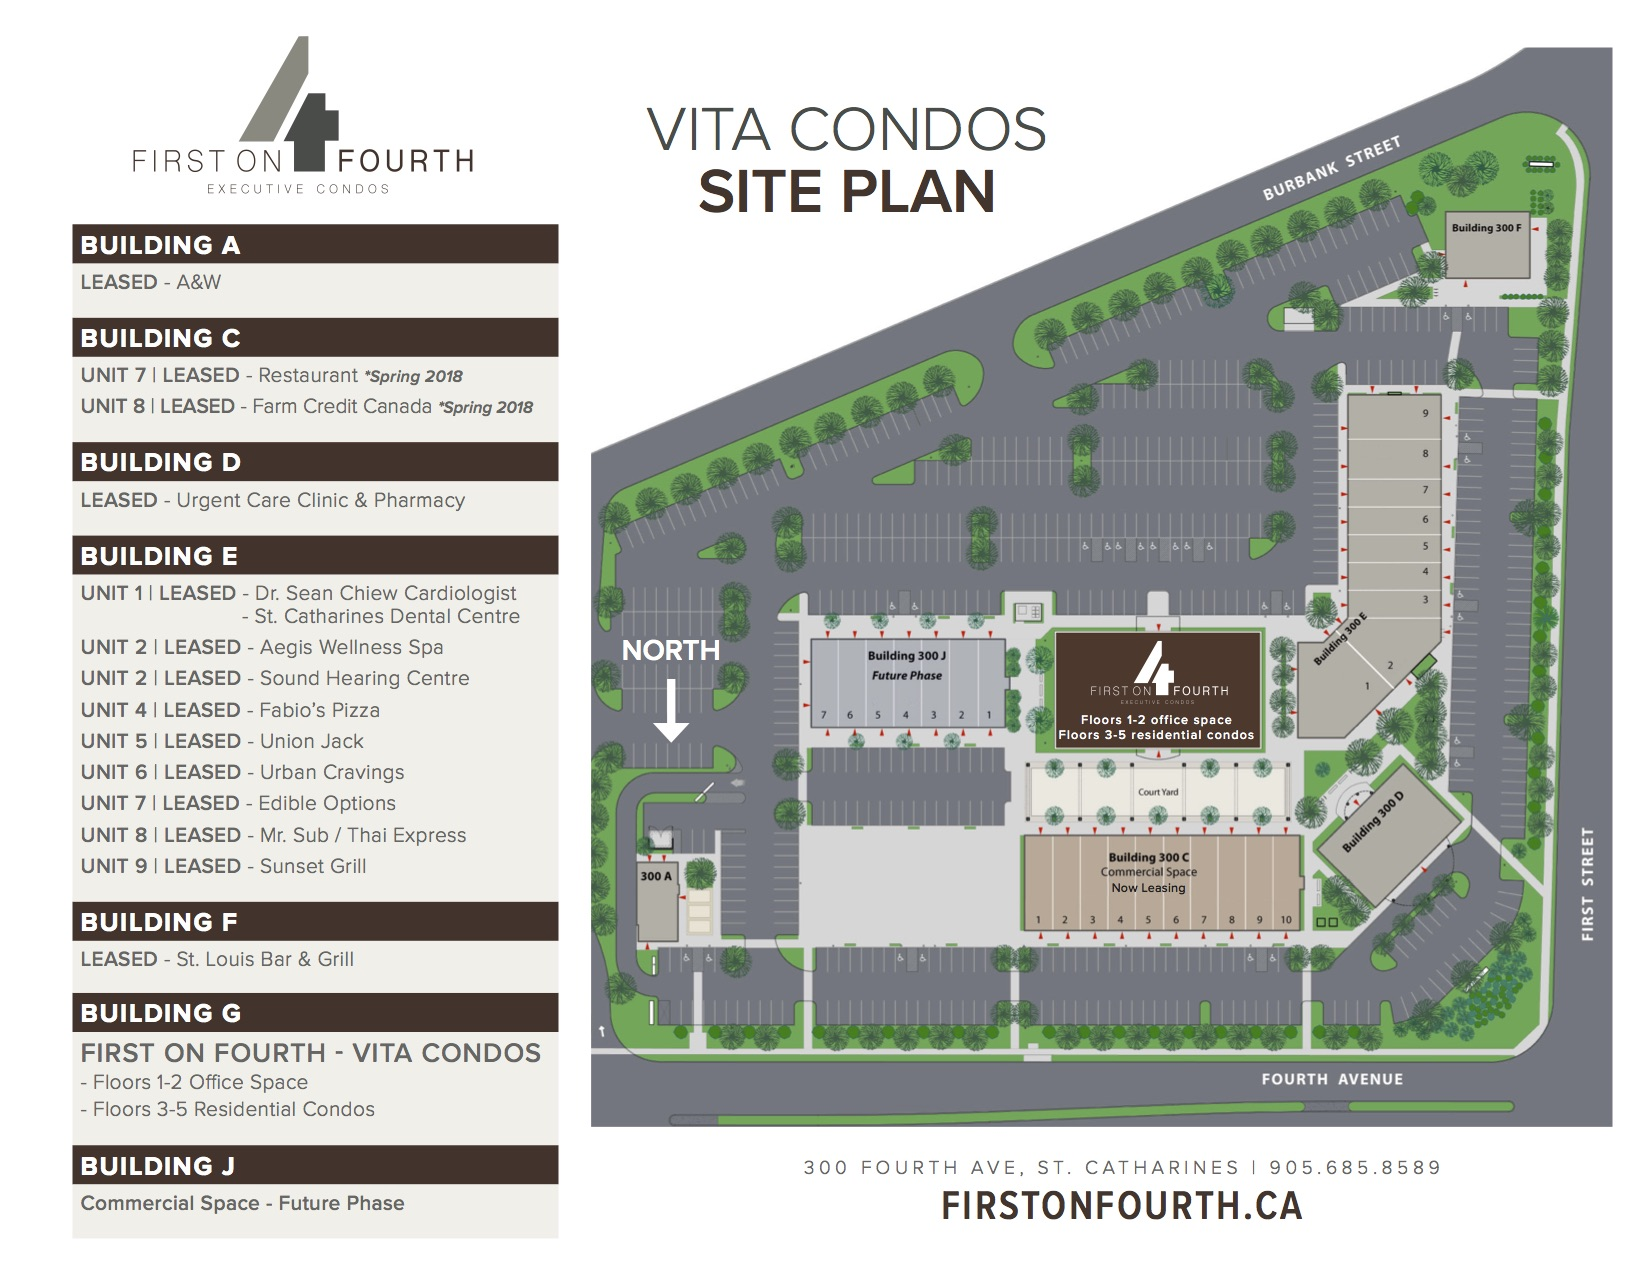 First on Fourth Executive Condos Site Plan